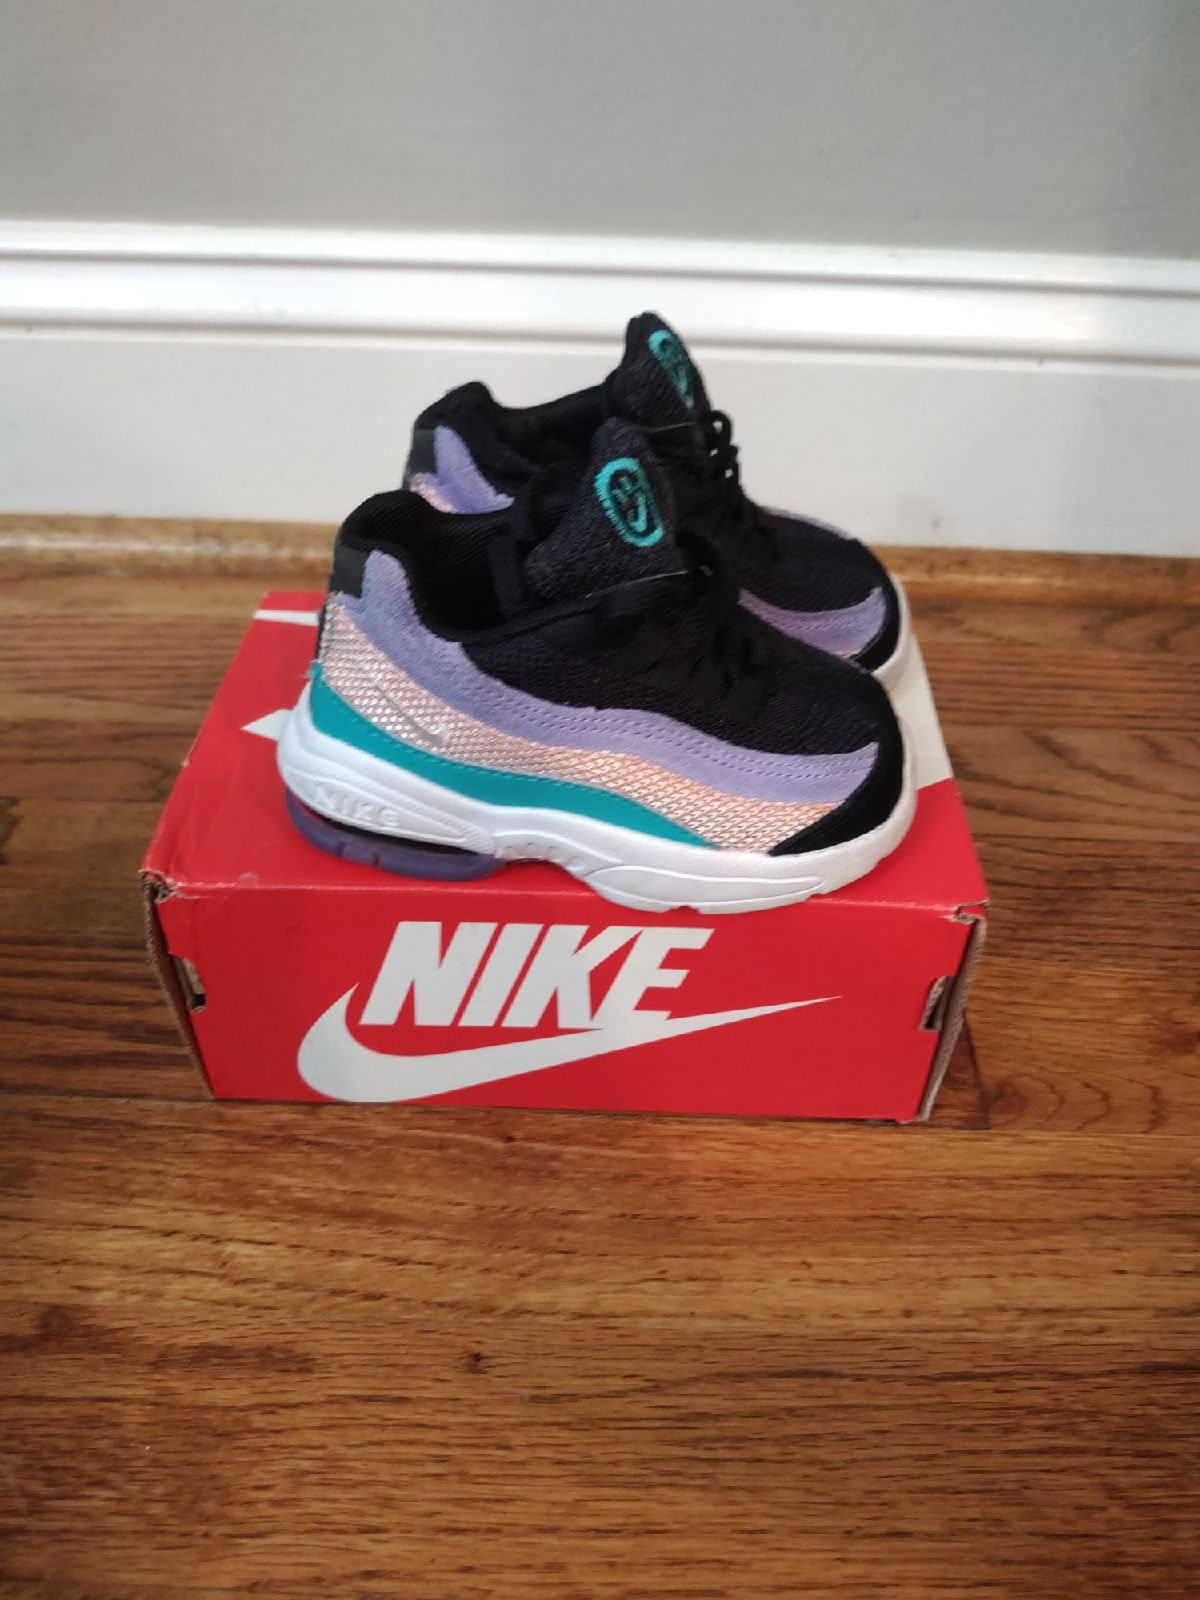 Air Max 95 girls size 5 toddler shoes barely worn.